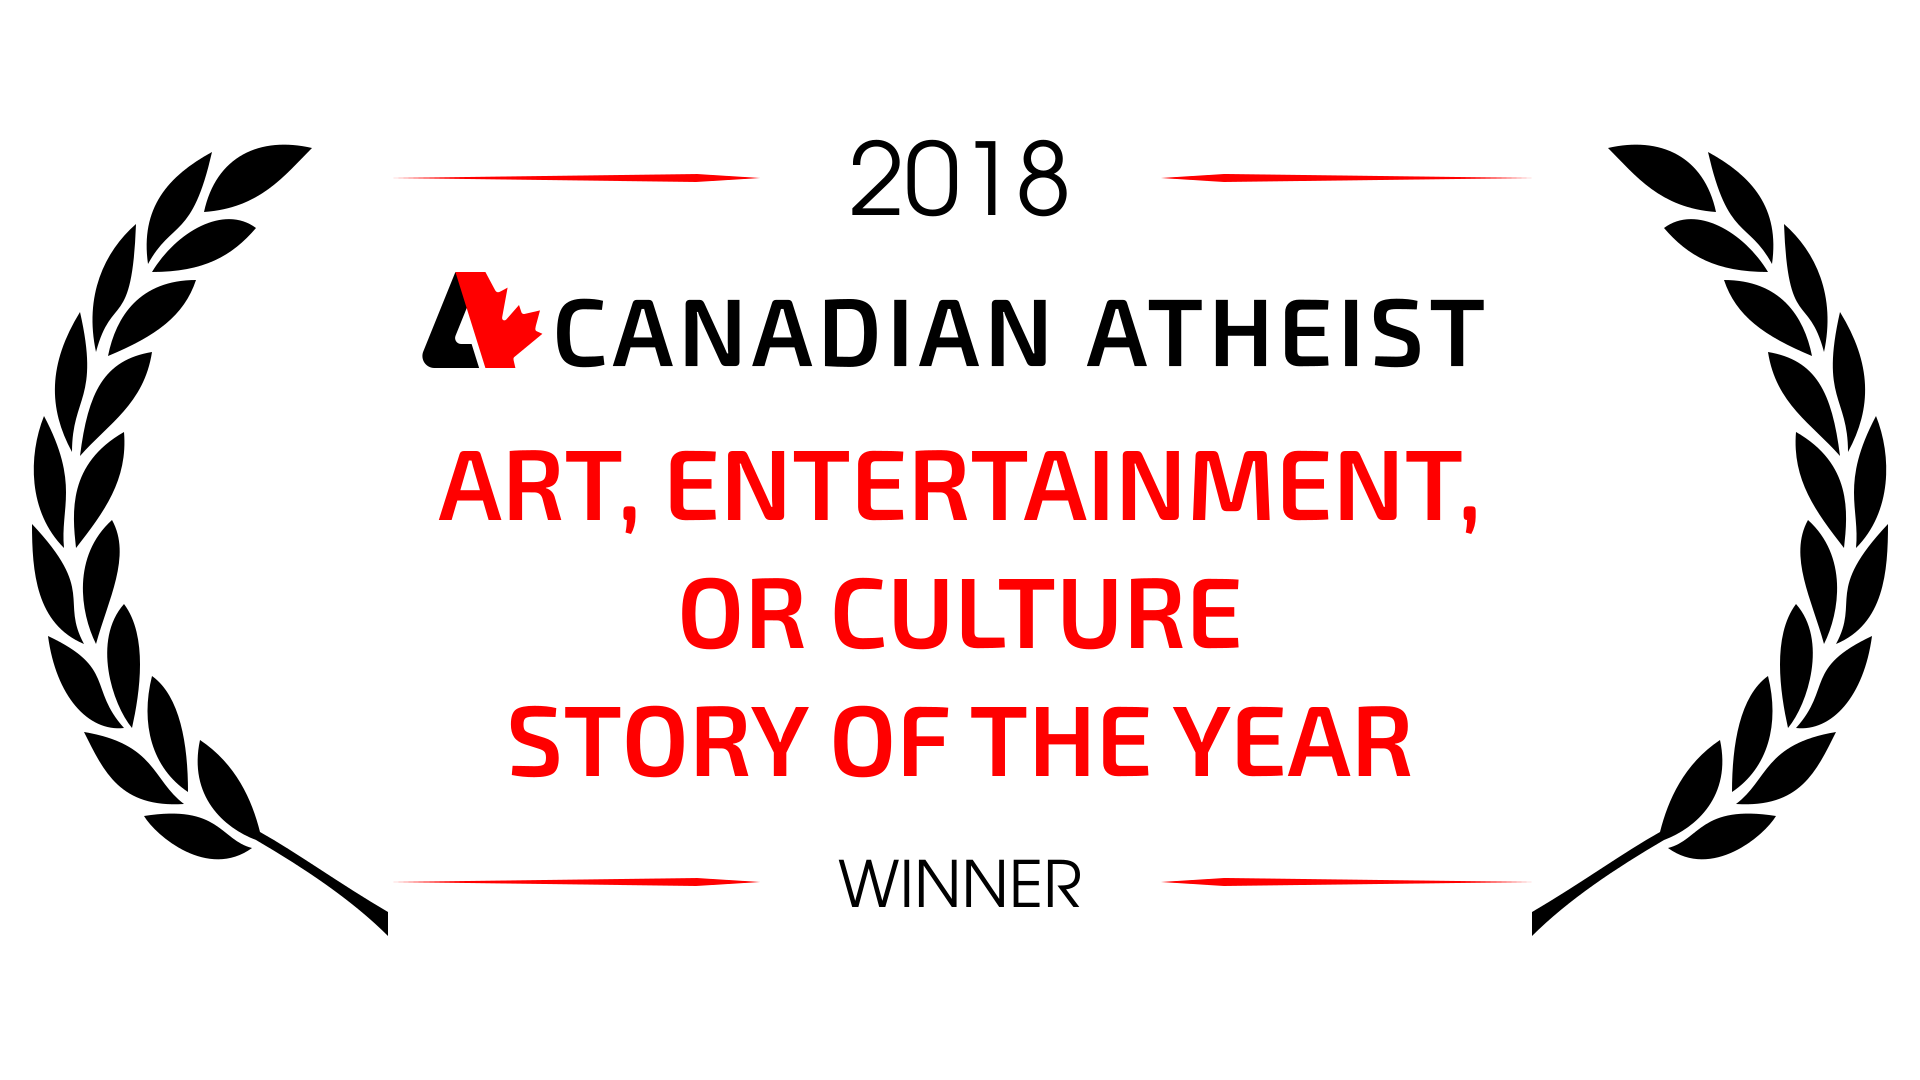 [2018 Canadian Atheist Art, entertainment, or culture story of the year winner award]